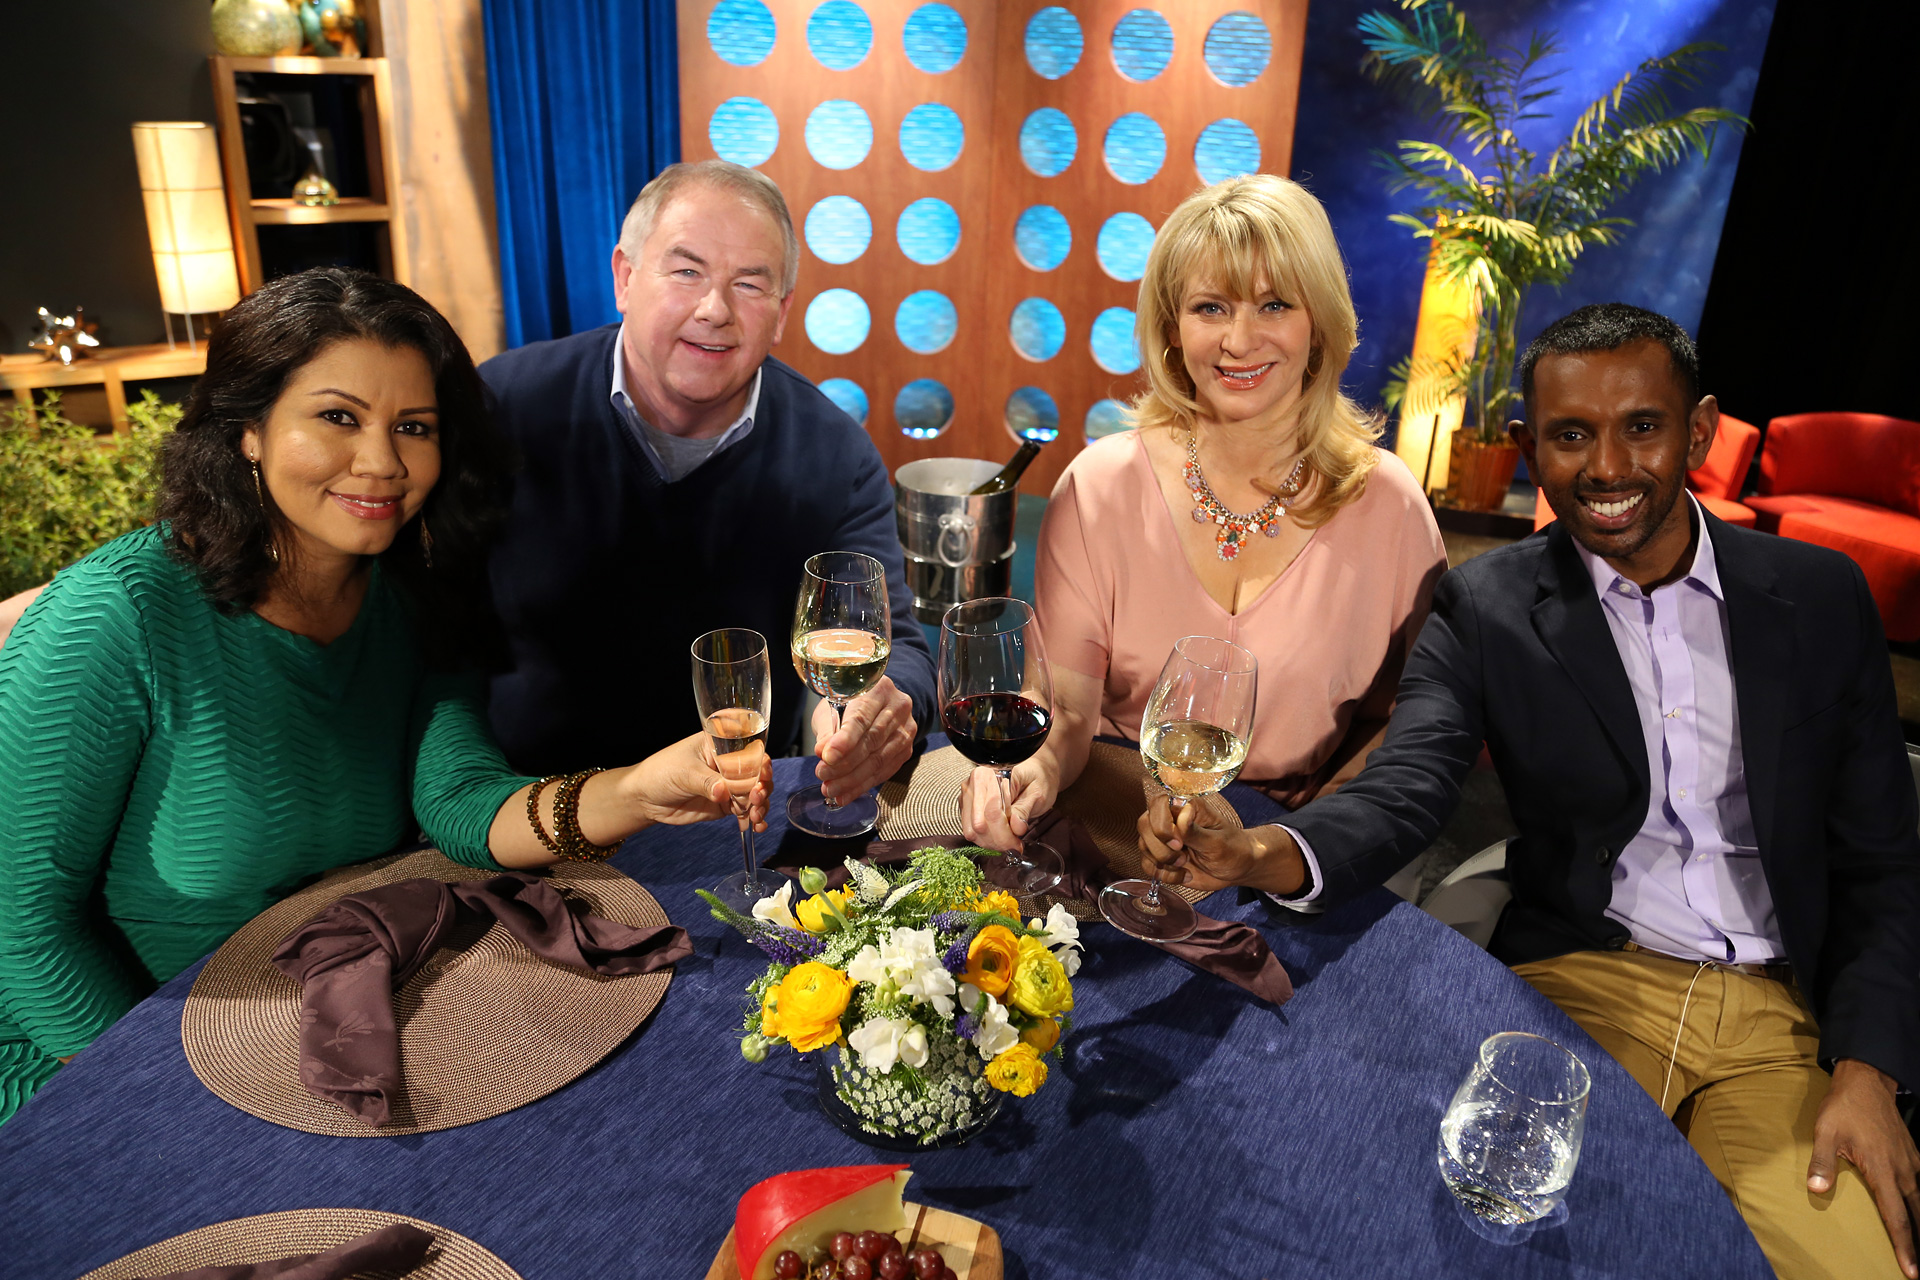 Host Leslie Sbrocco and guests on the set of the episode 8 of season 11.